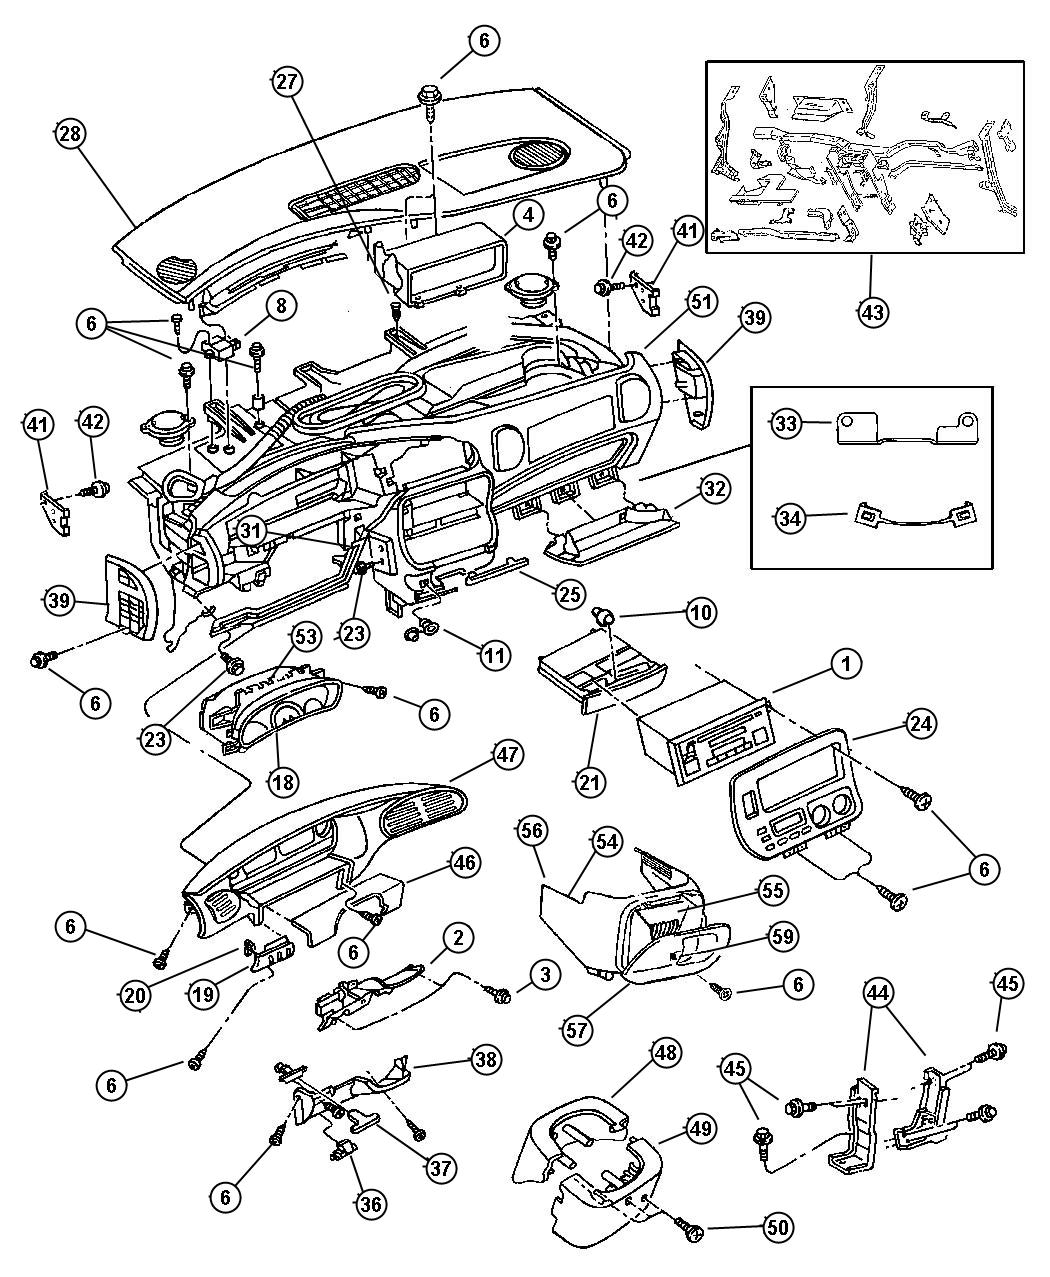 1995 plymouth voyager fuse box diagram